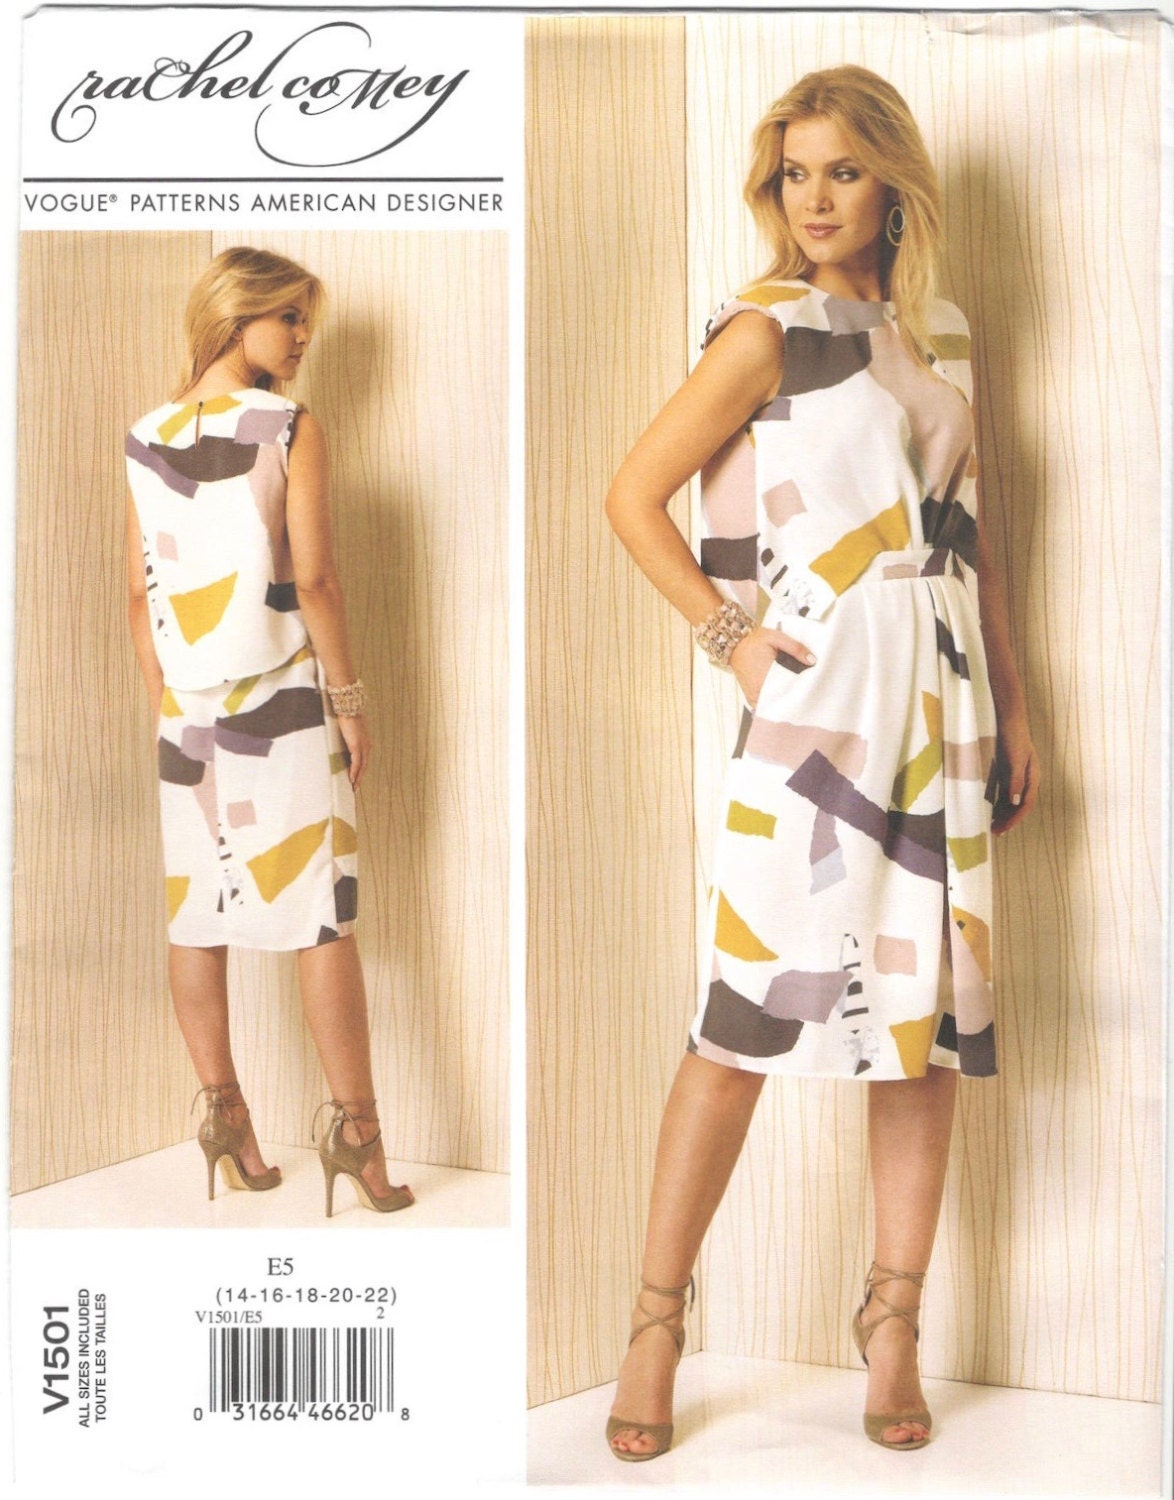 Rachel Comey's Delane dress pattern Vogue 1501